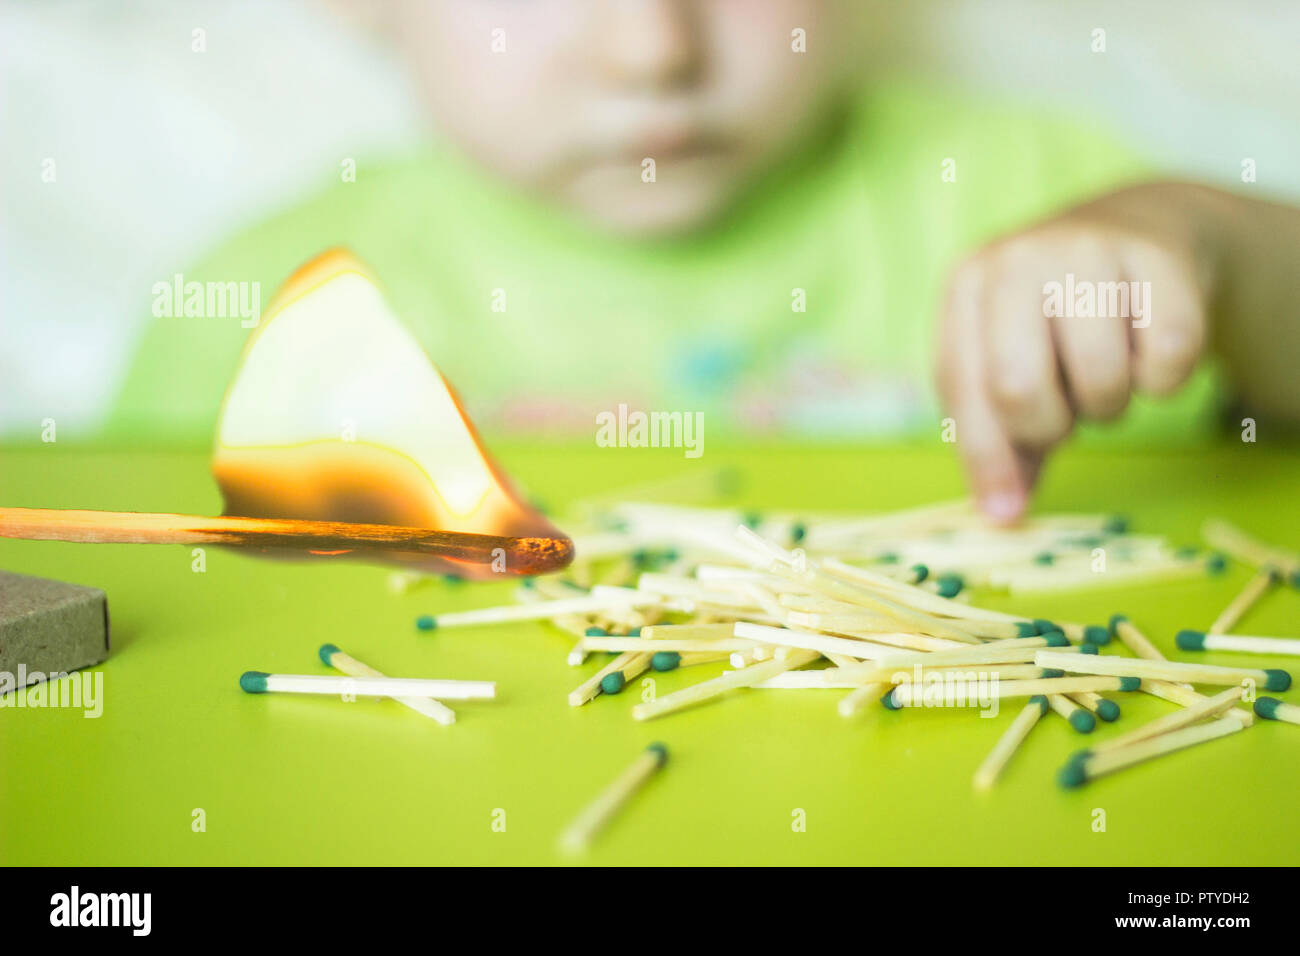 A child plays with matches in the foreground a burning match, a child and matches, a fire, dangerous - Stock Image